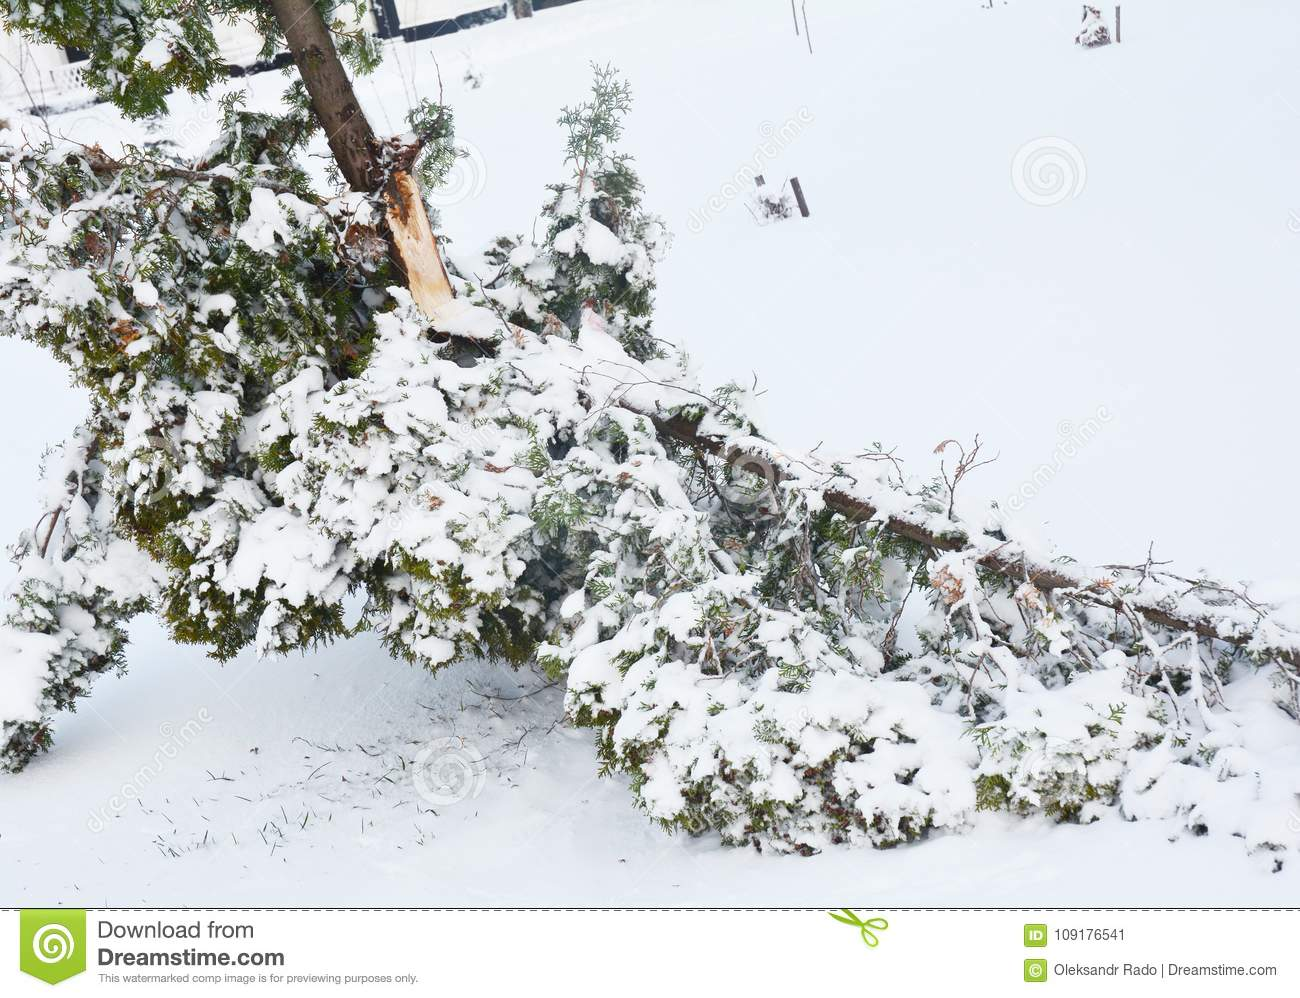 After the Snow Storm: Coping with Snow- and Ice-Damaged Trees.